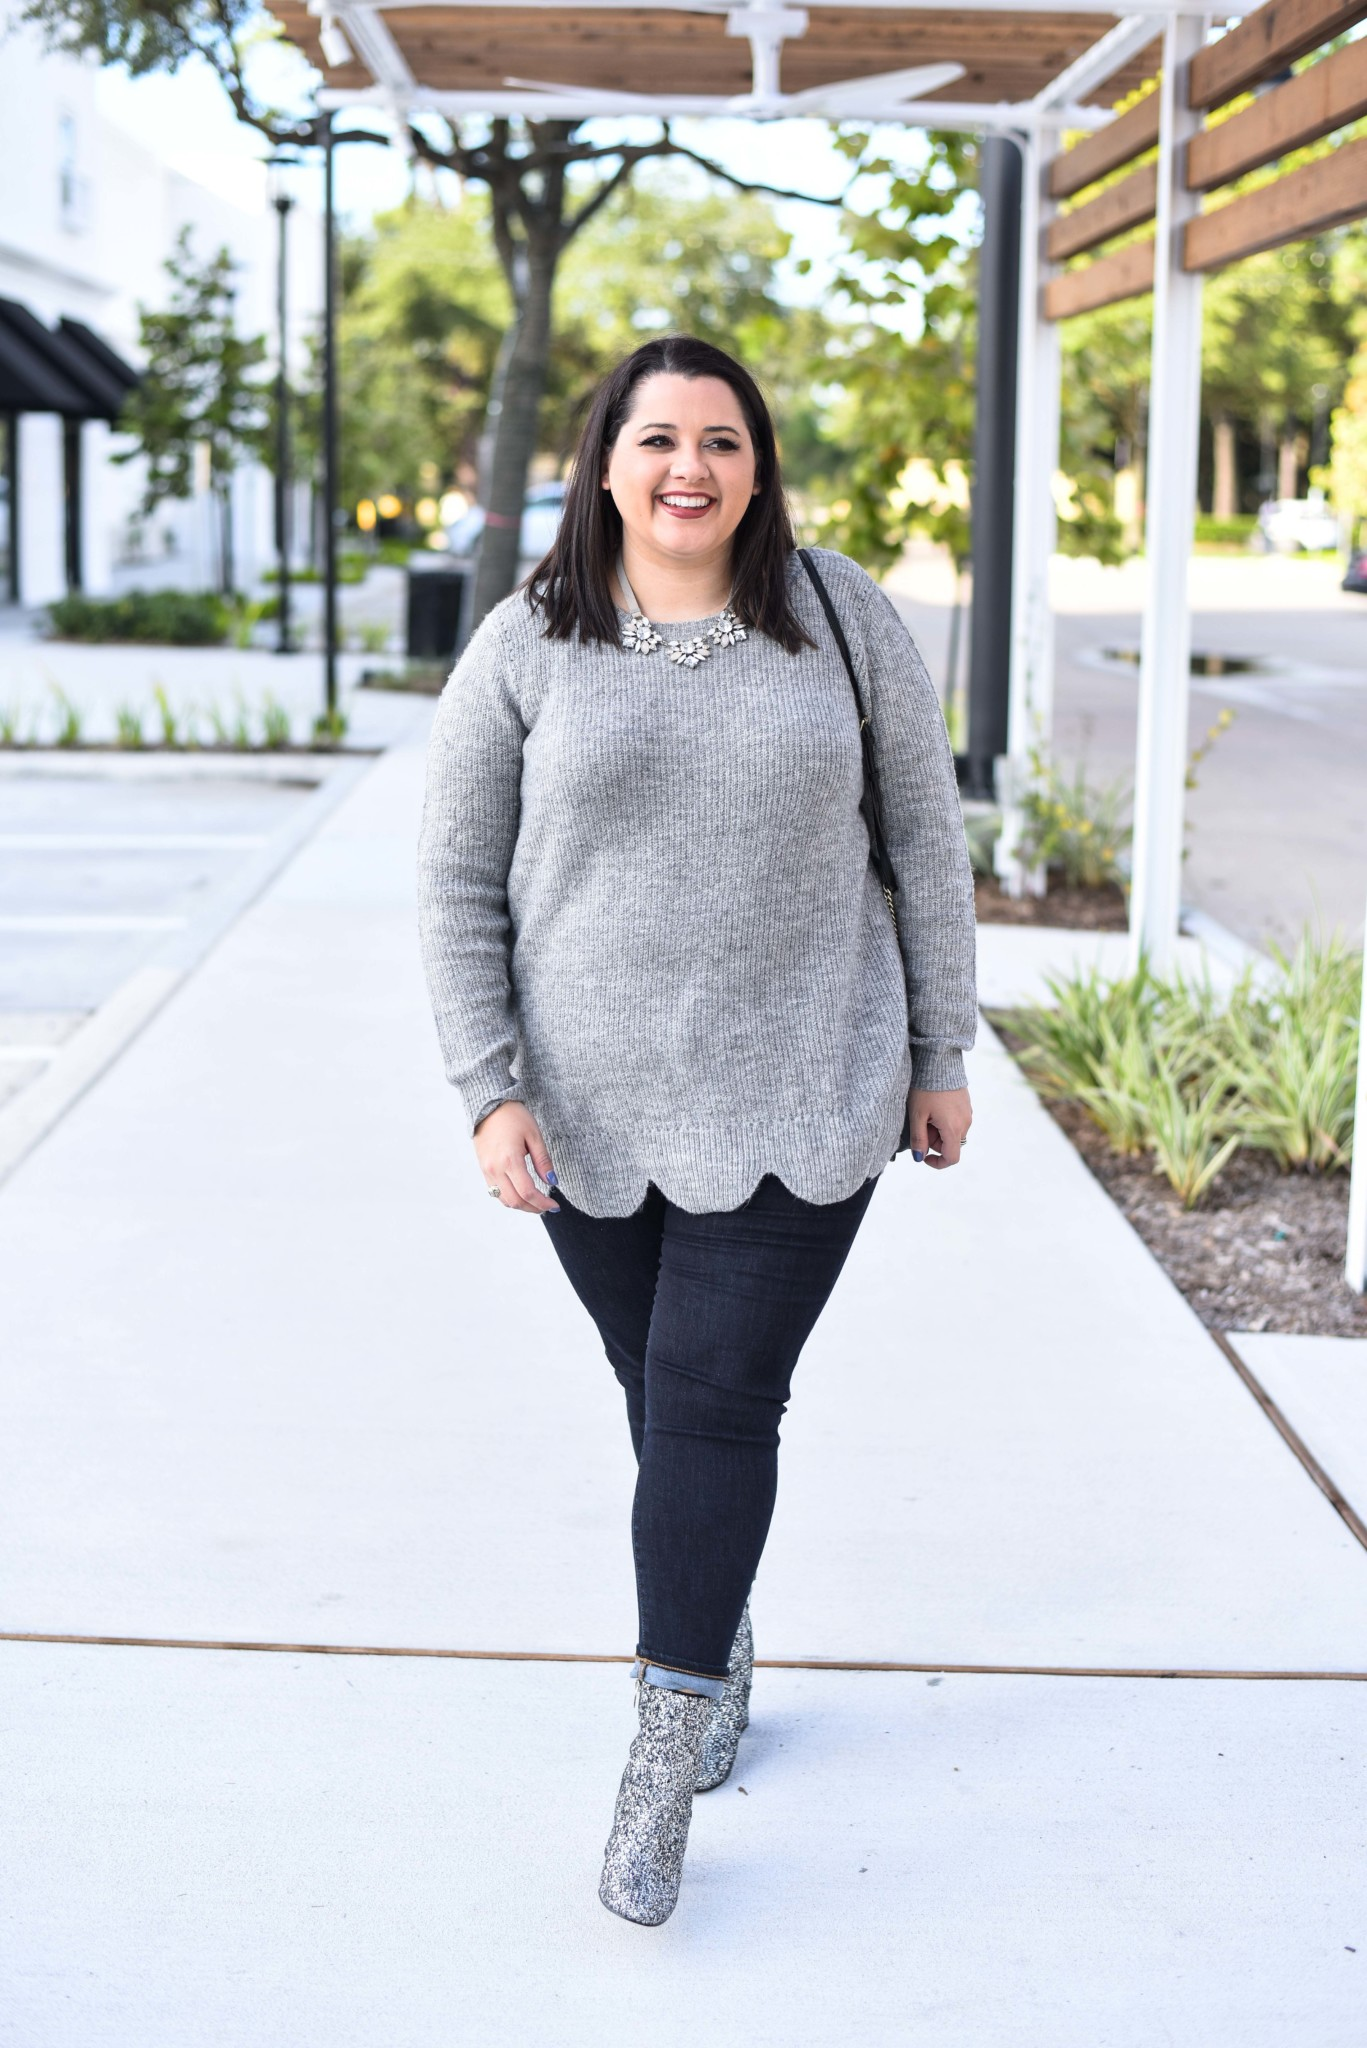 Scallop Hem Sweater from Lane Bryant - currently 40% off during Cyber Week